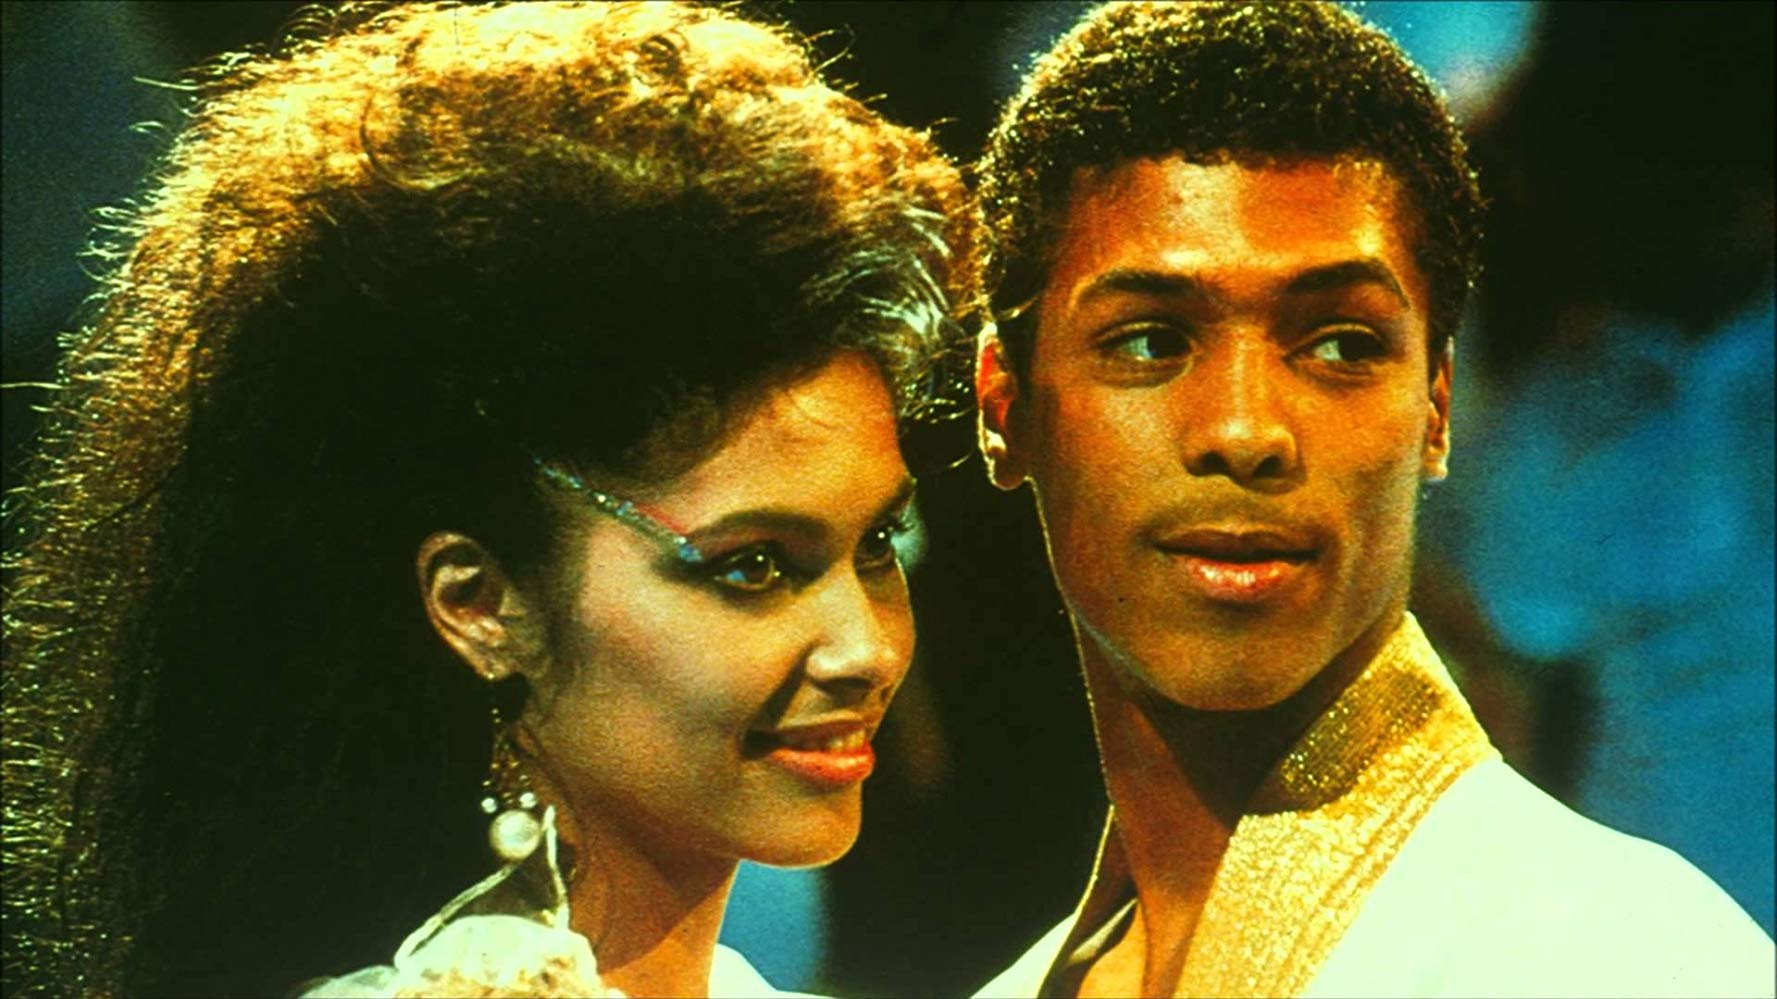 Vanity and Taimak in The Last Dragon (1985)